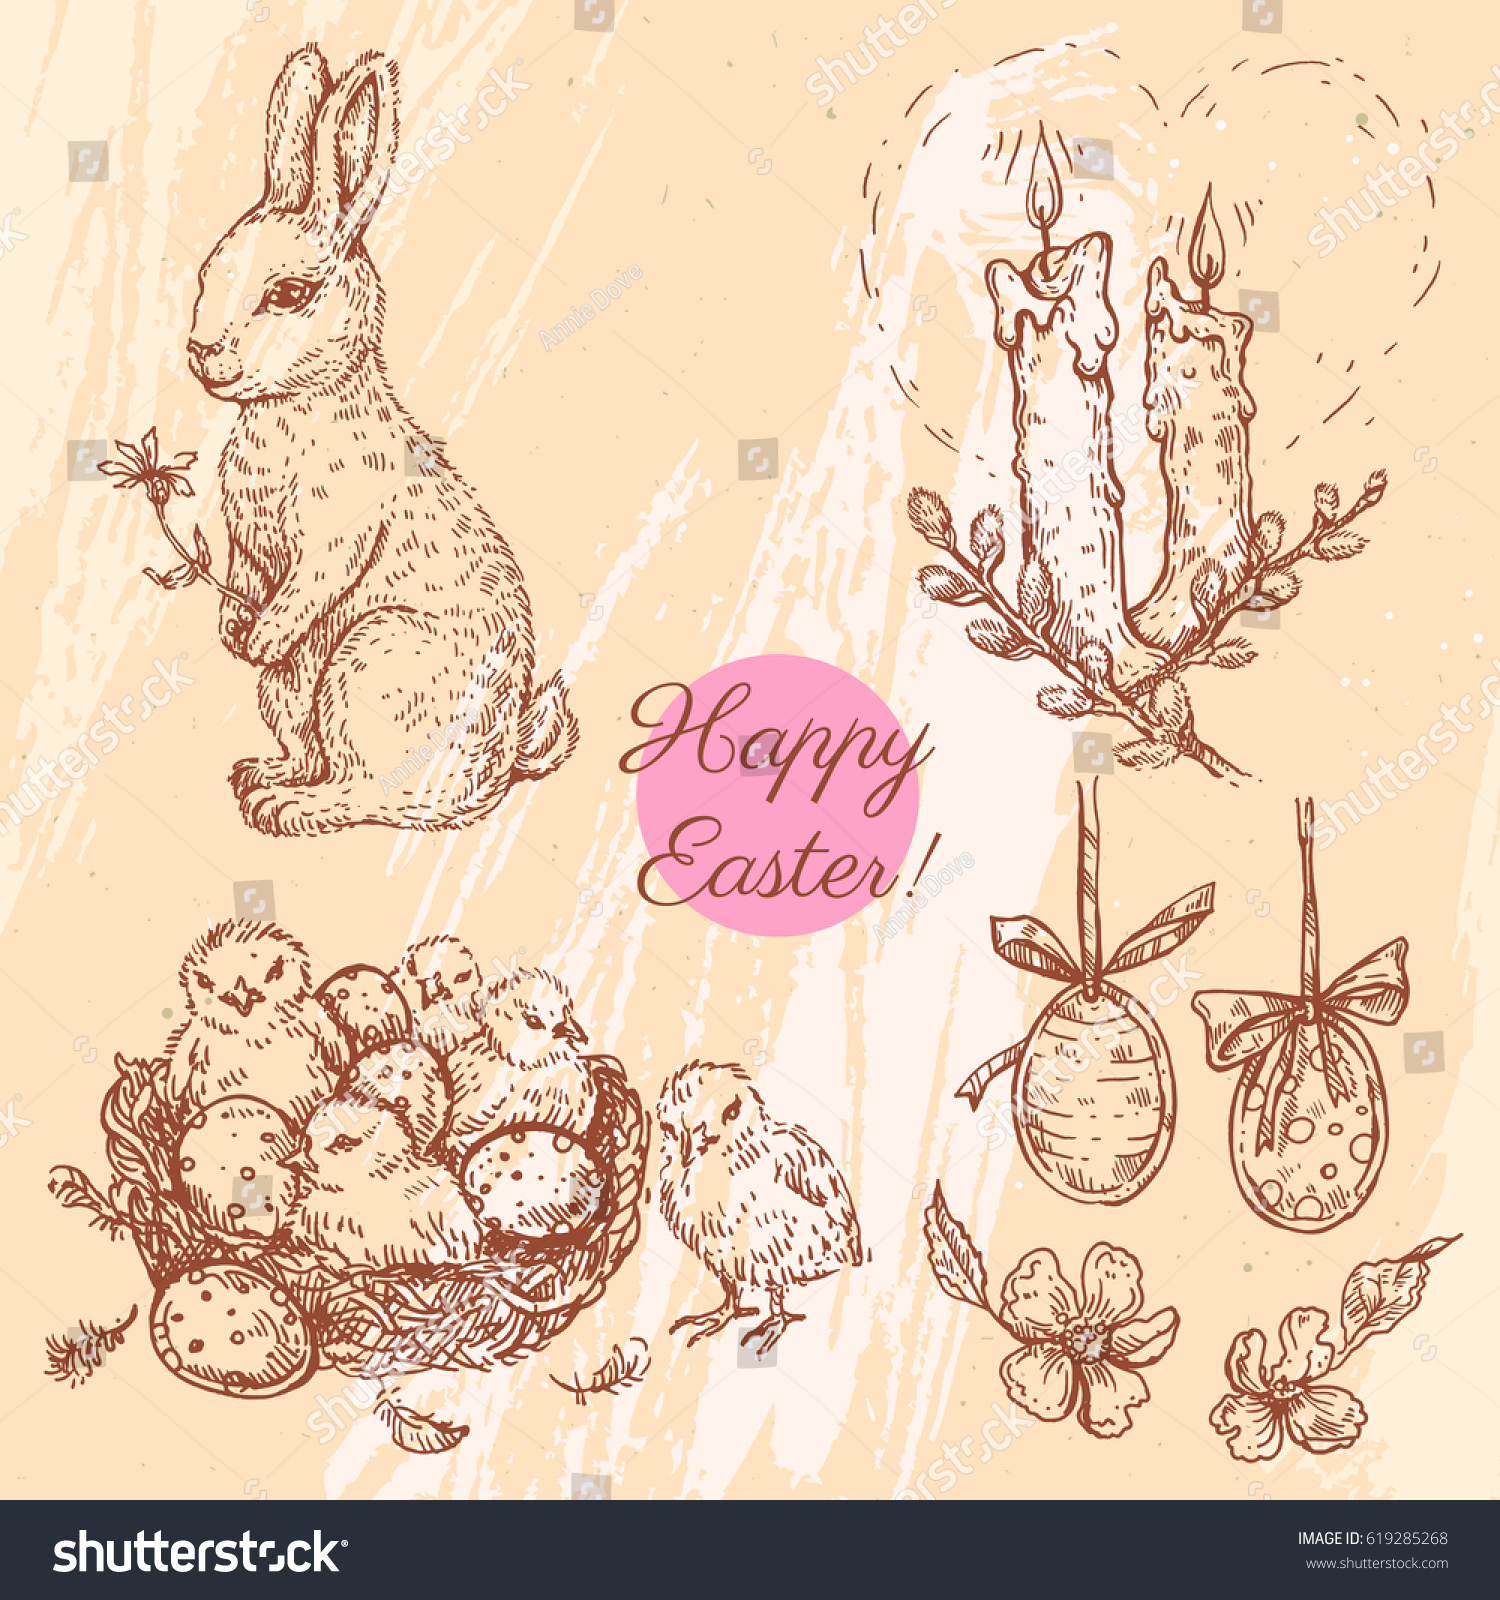 Vector Set With Linear Sketches. Easter Bunny With Flower, Candles, Easter  Eggs,